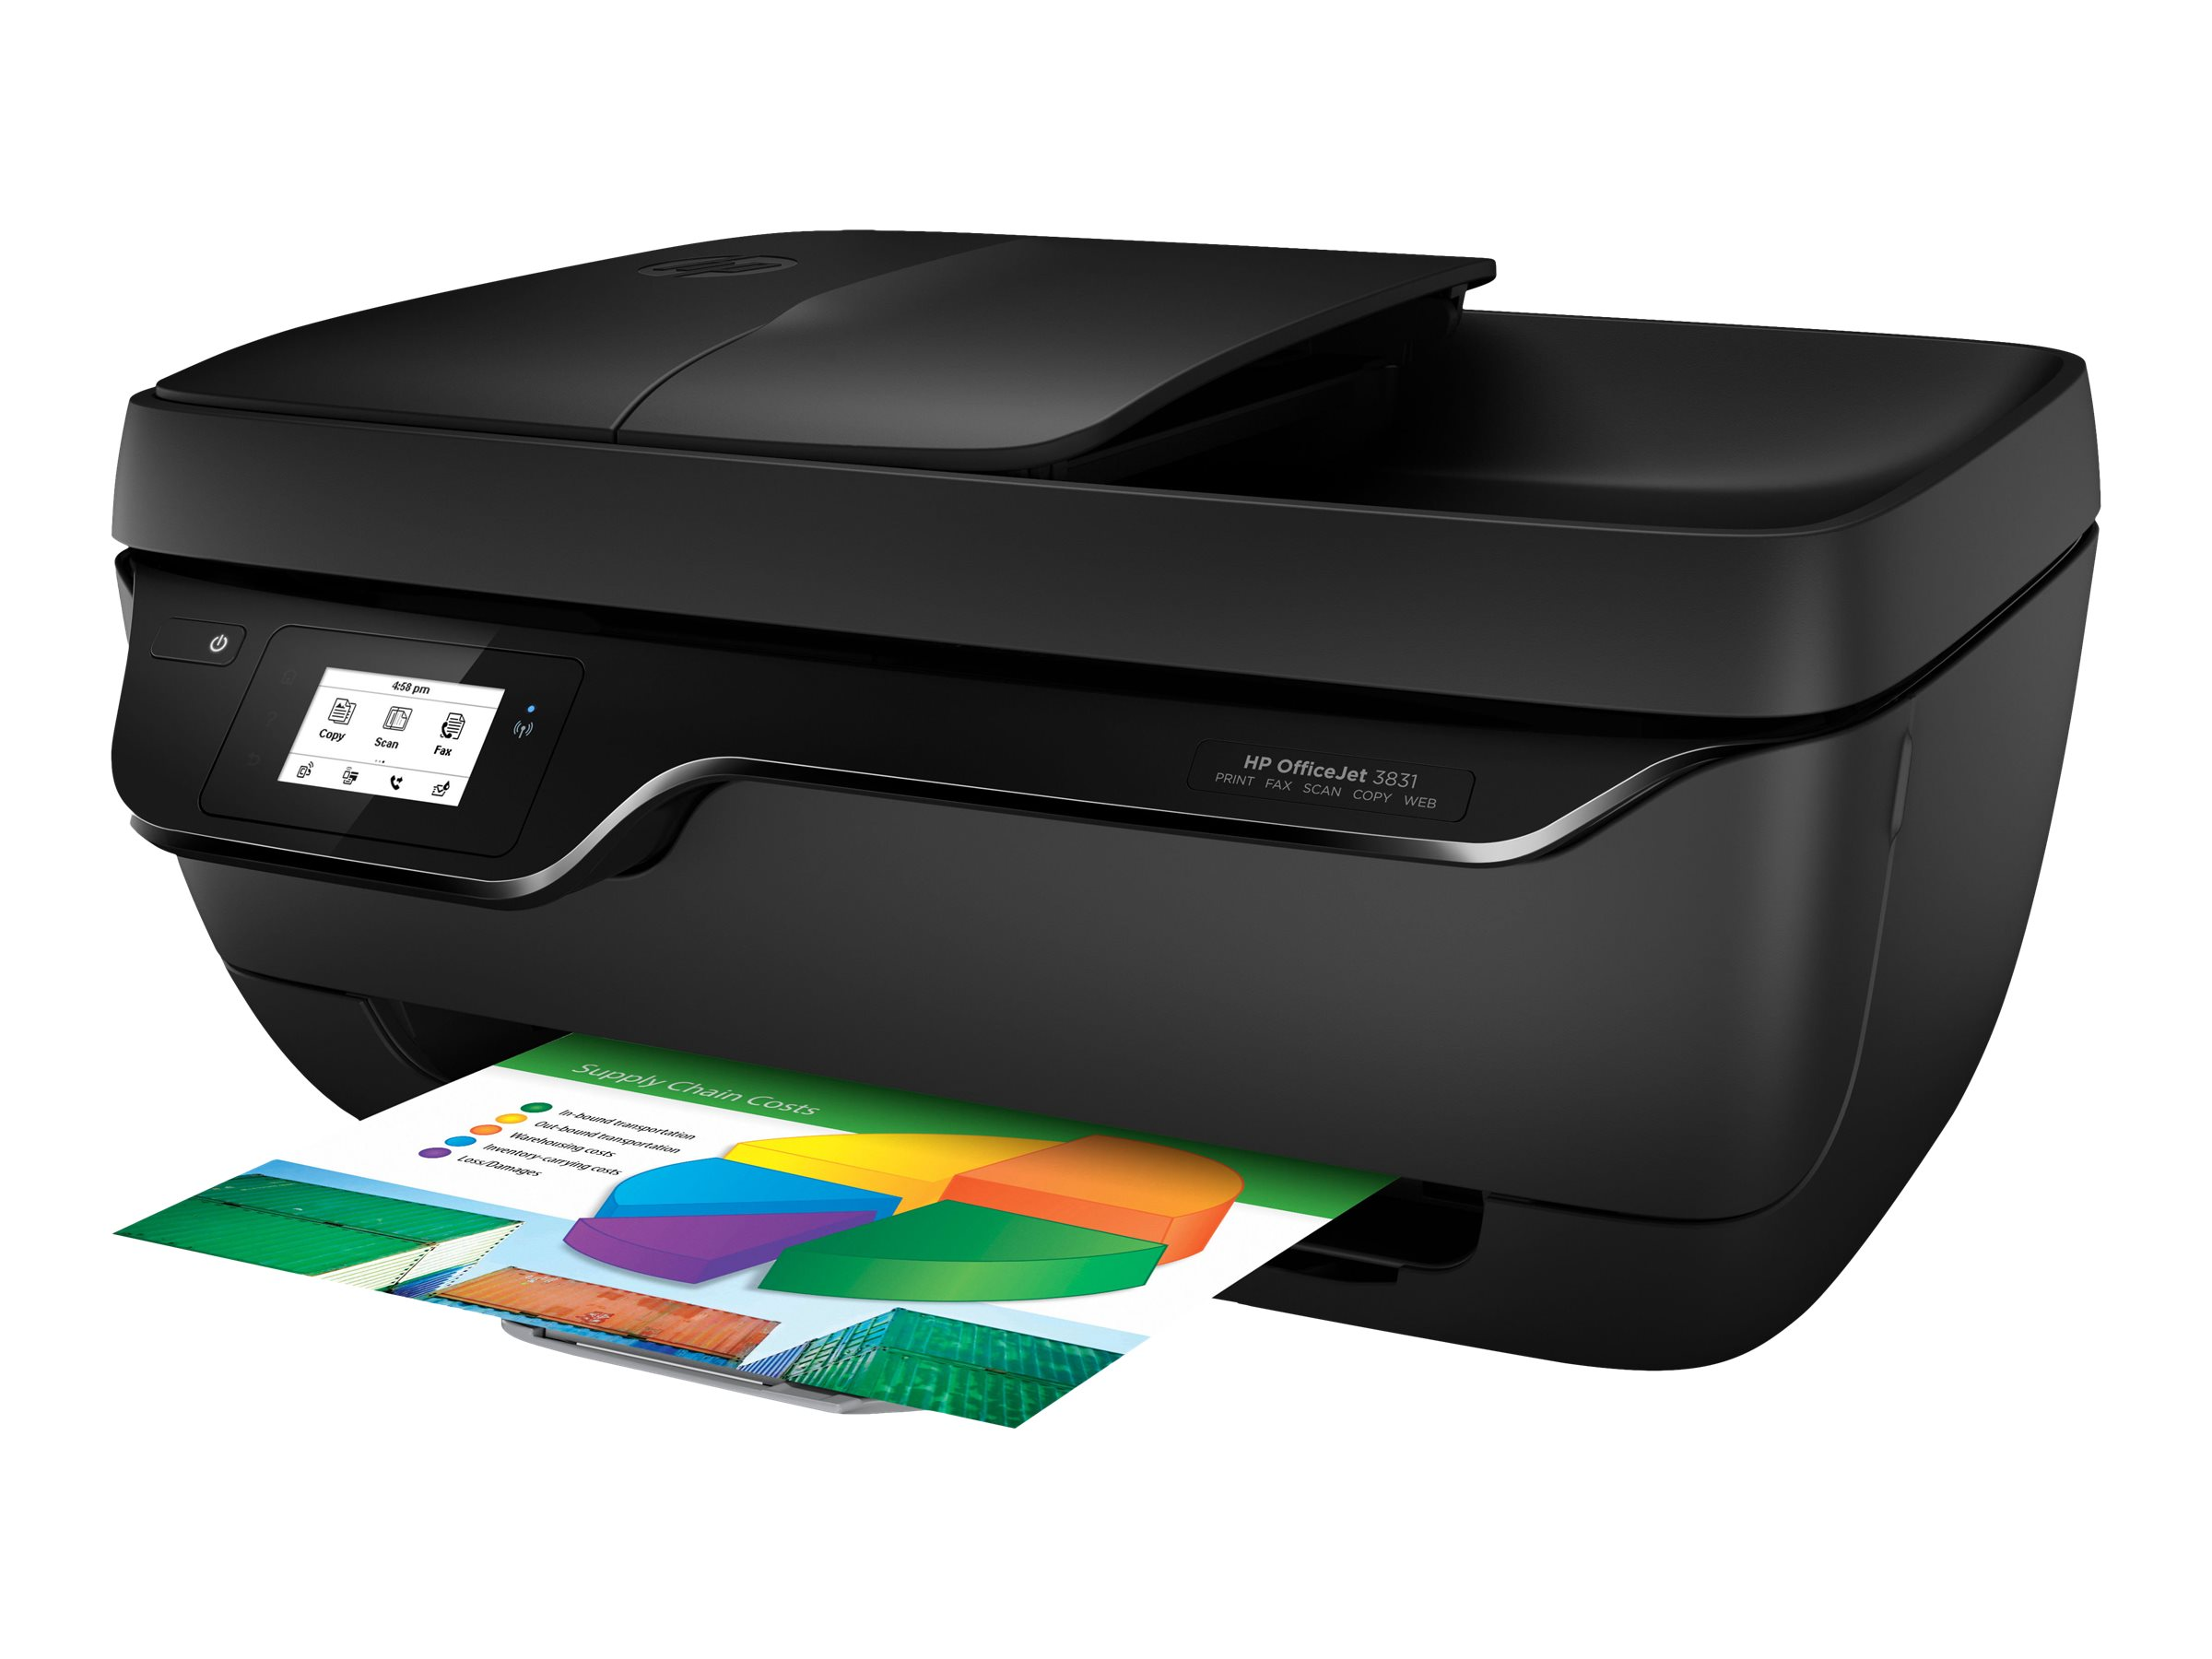 HP Officejet 3831 All-in-One - Multifunktionsdrucker - Farbe - Tintenstrahl - 216 x 297 mm (Original)